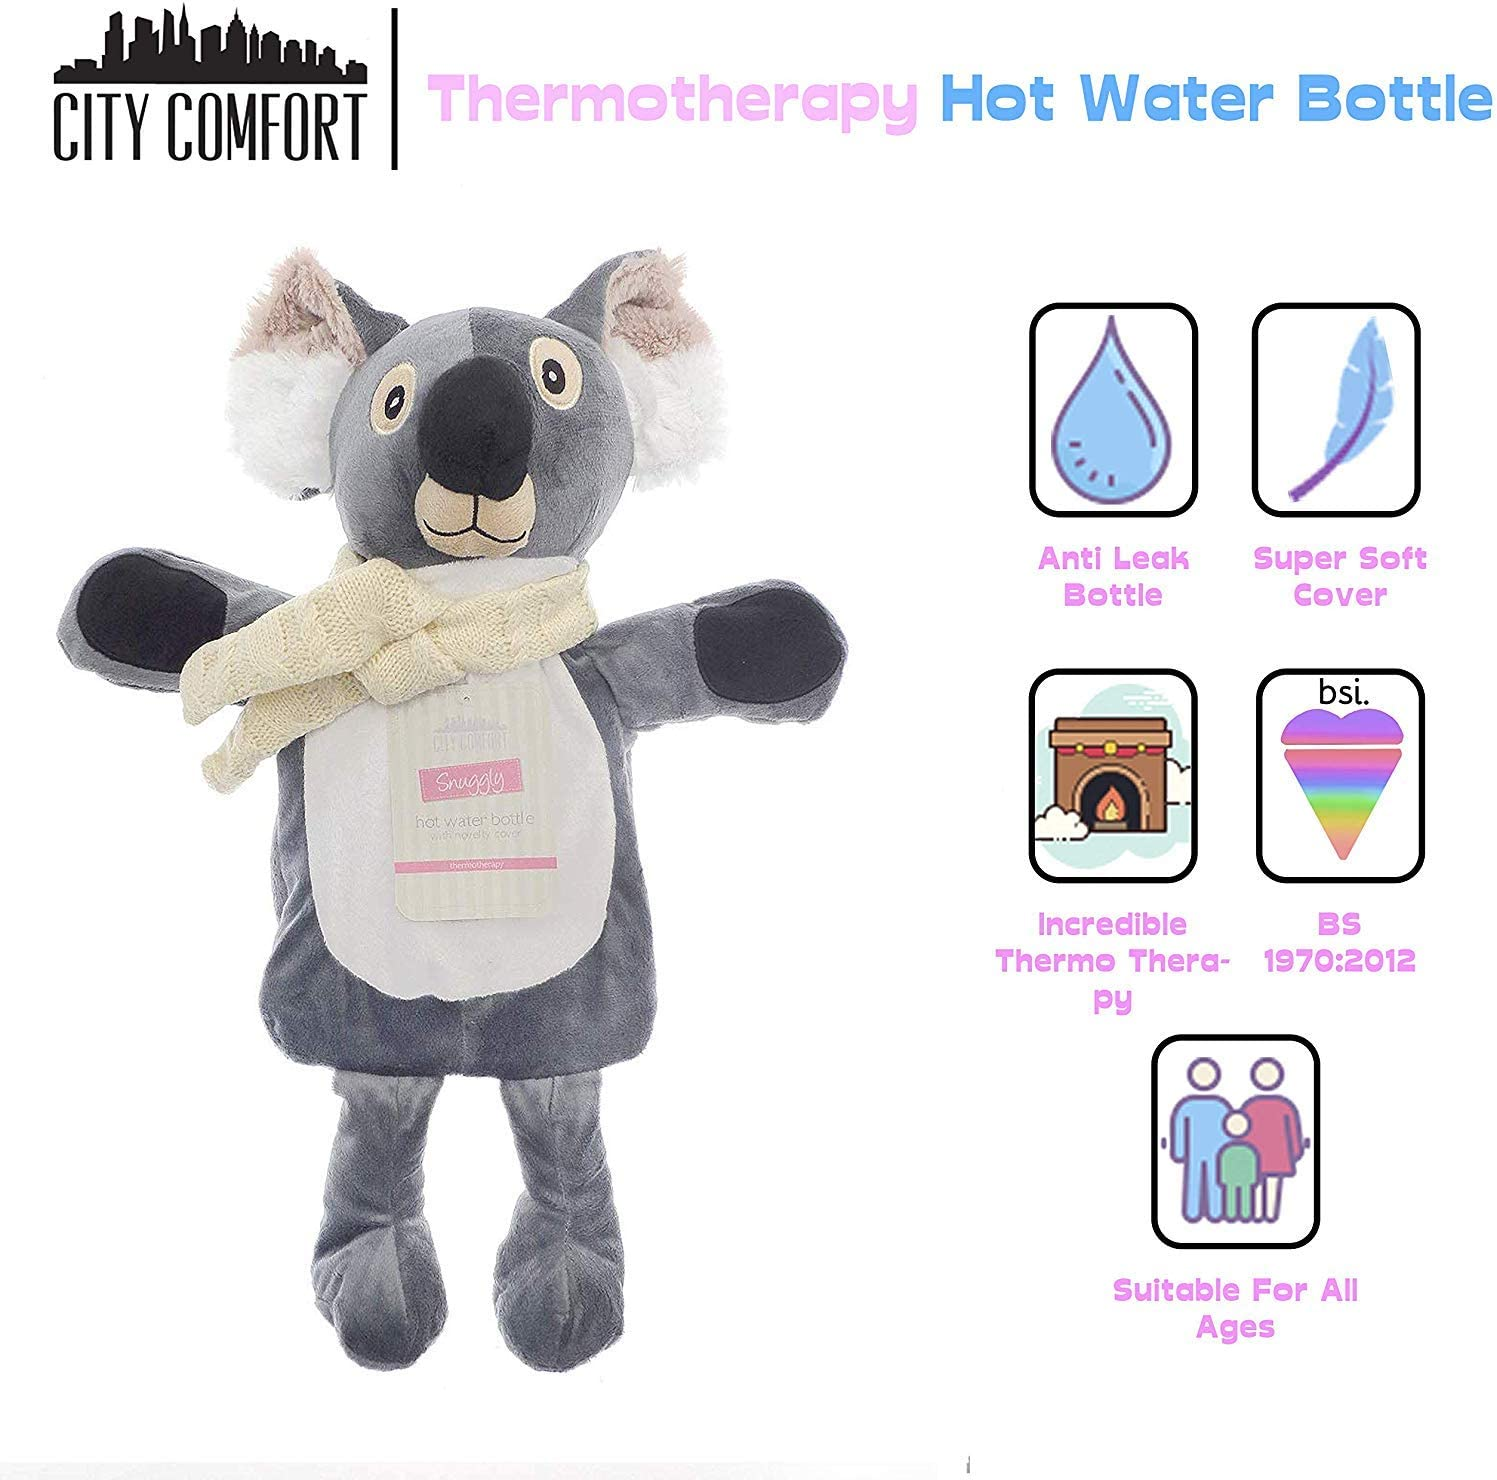 Gifts for Girls Boys Grey 100/% Natural Rubber Cosy Bed Warmer Super Soft Peluche Koala Rabbit CityComfort Hot Water Bottle with Cover 1L Kids Hot Water Bottles with Fleece Covers